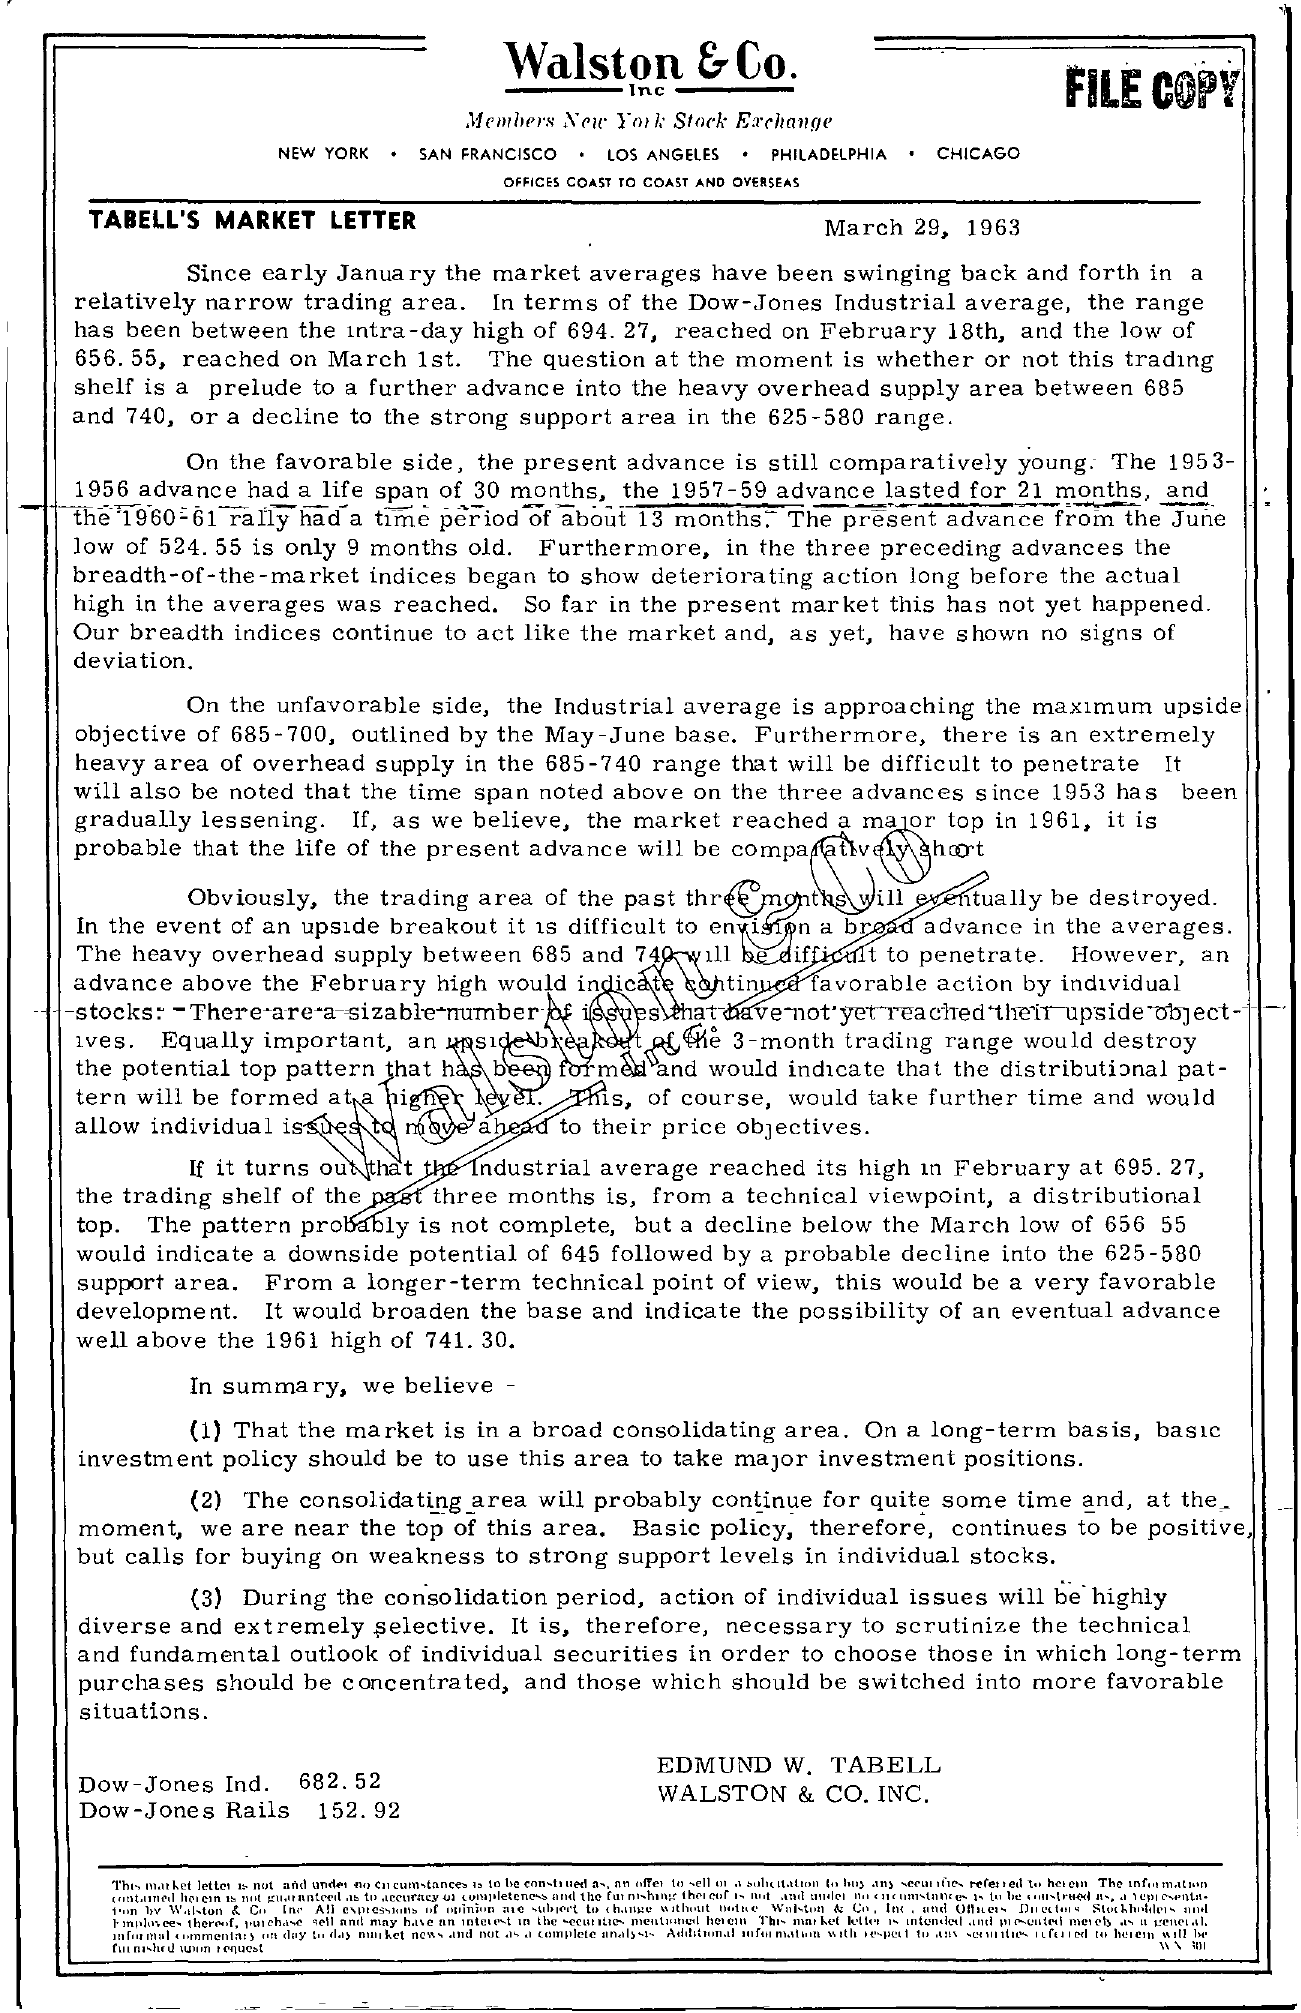 Tabell's Market Letter - March 29, 1963